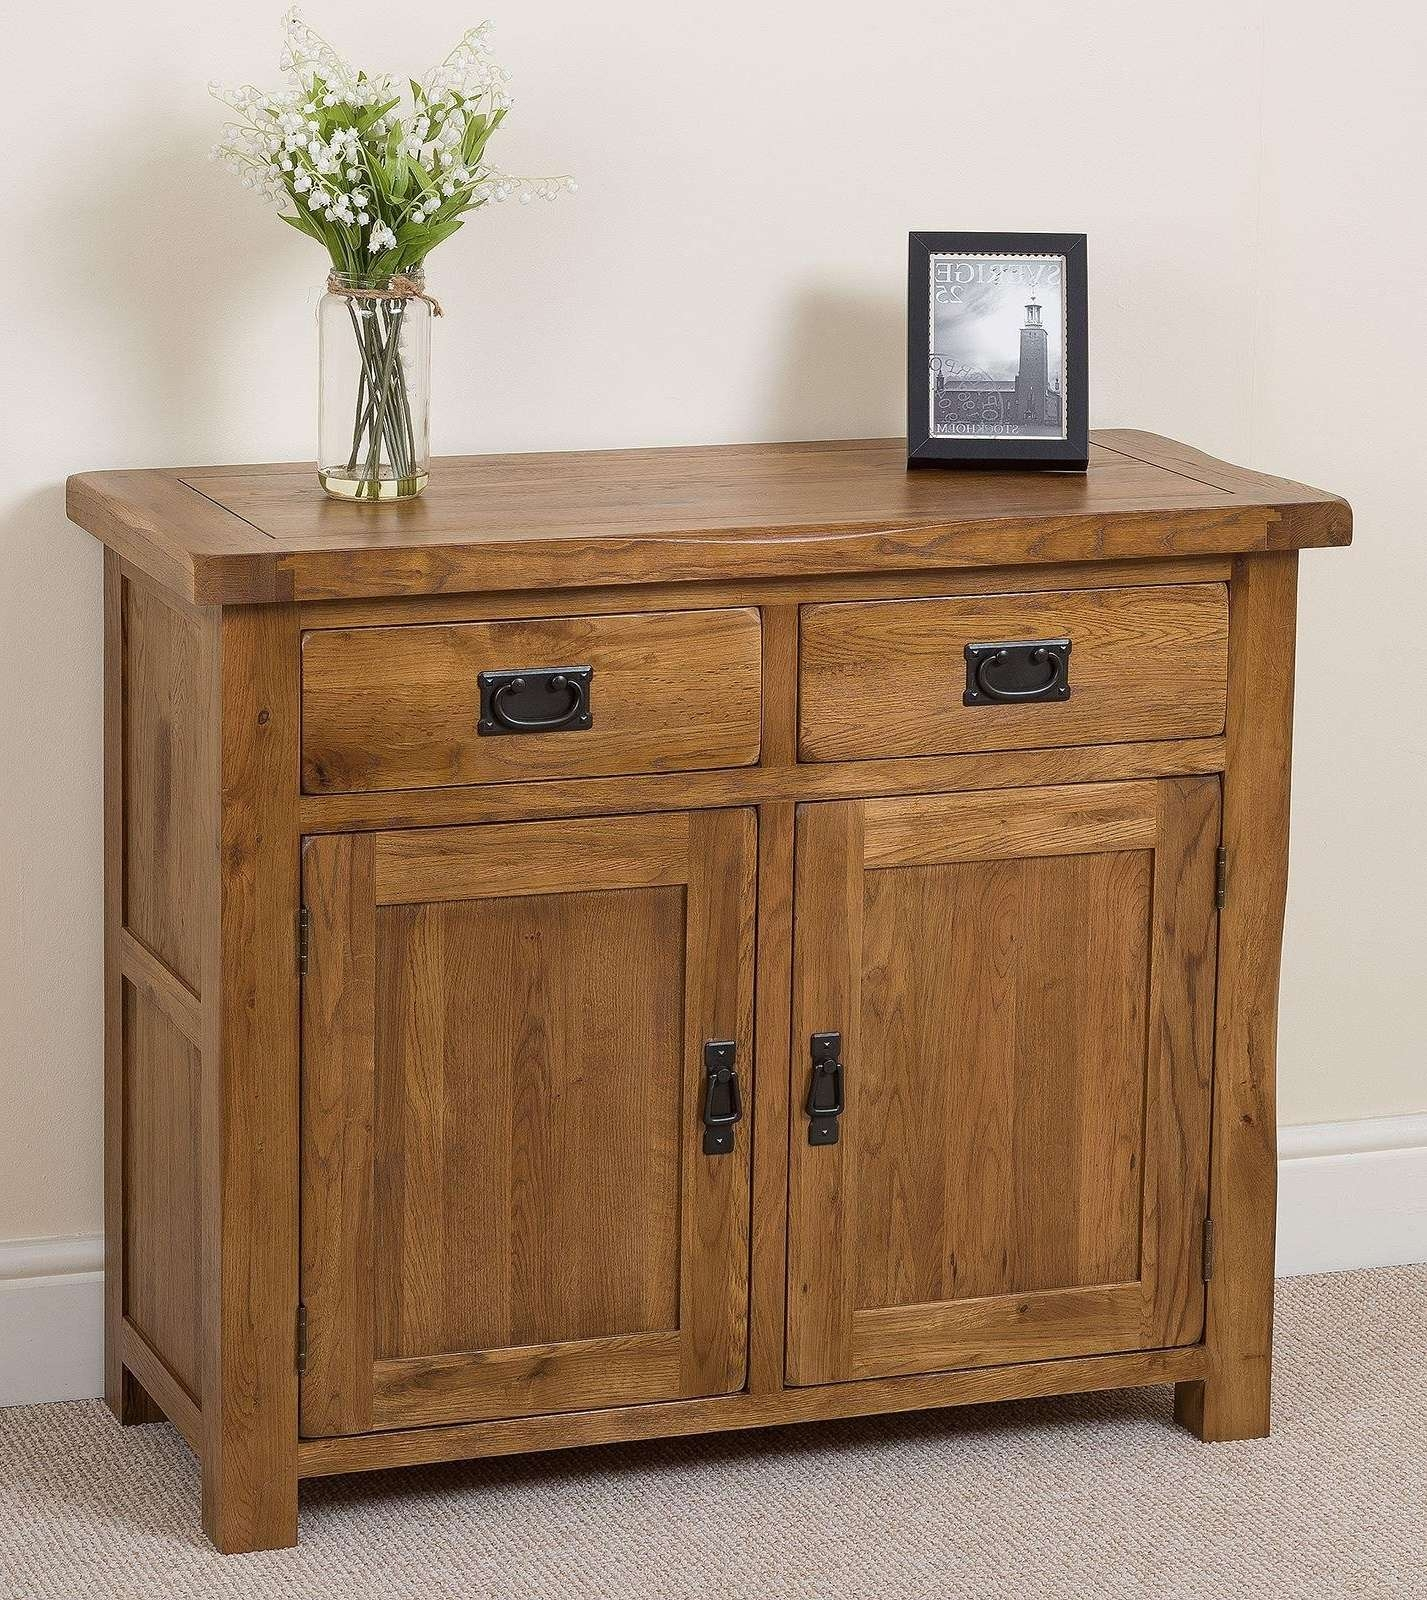 Rustic Sideboard Small : Rocket Uncle – Find The Harmony Rustic With Rustic Sideboards Furniture (View 5 of 20)